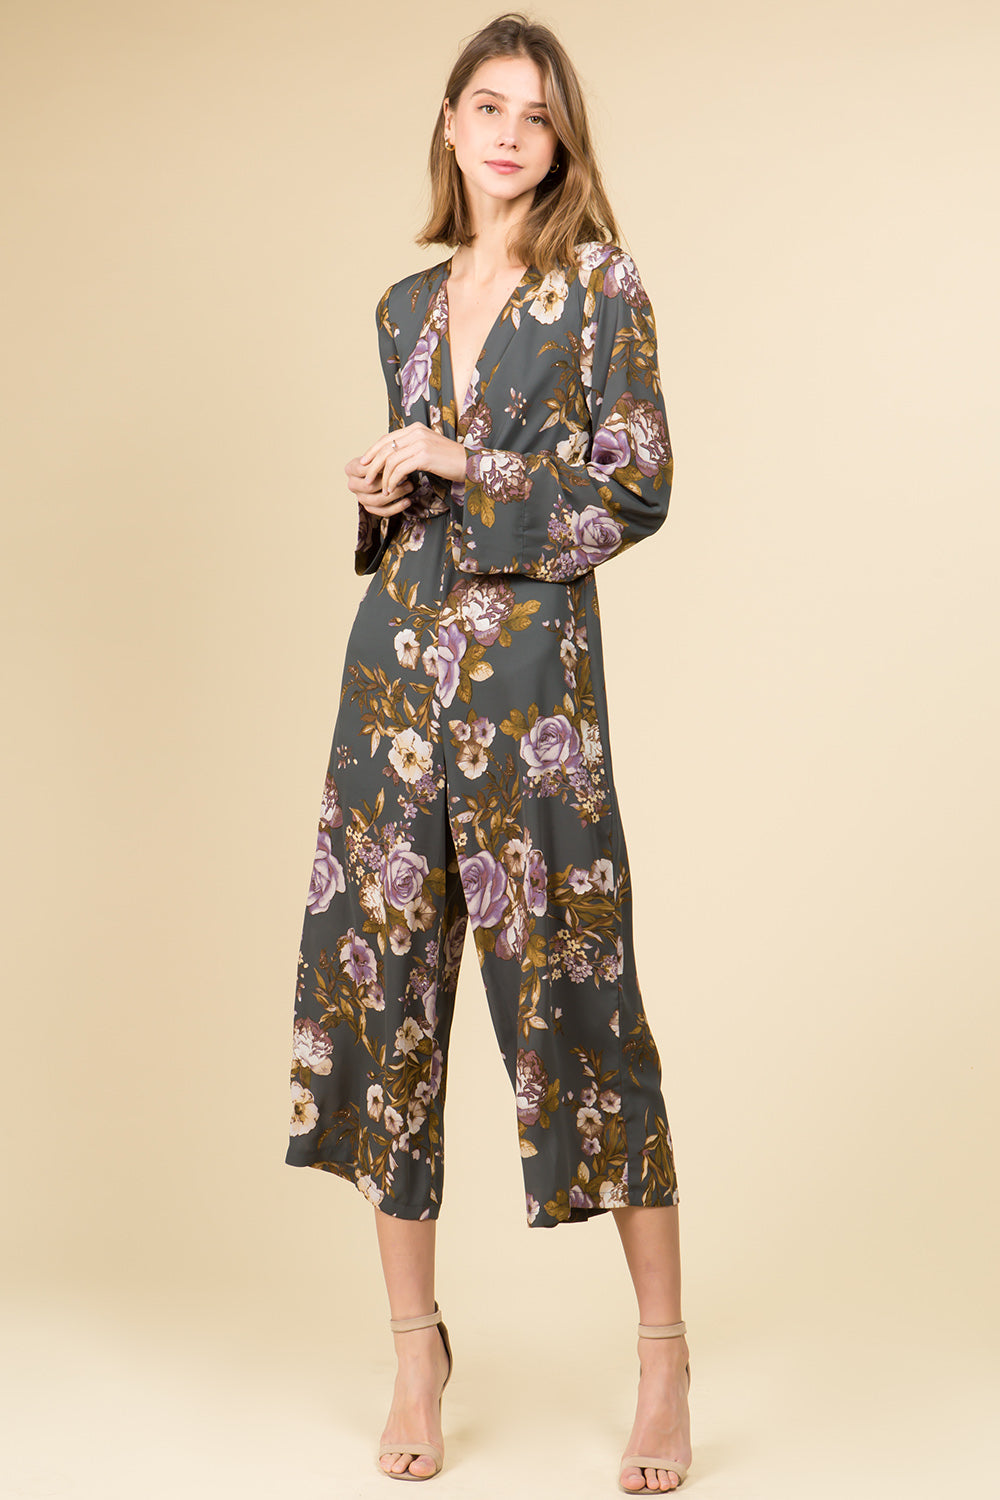 LONG SLEEVE TWIST FRONT MID CALF LENGTH JUMPSUIT IN FLORAL PRINT